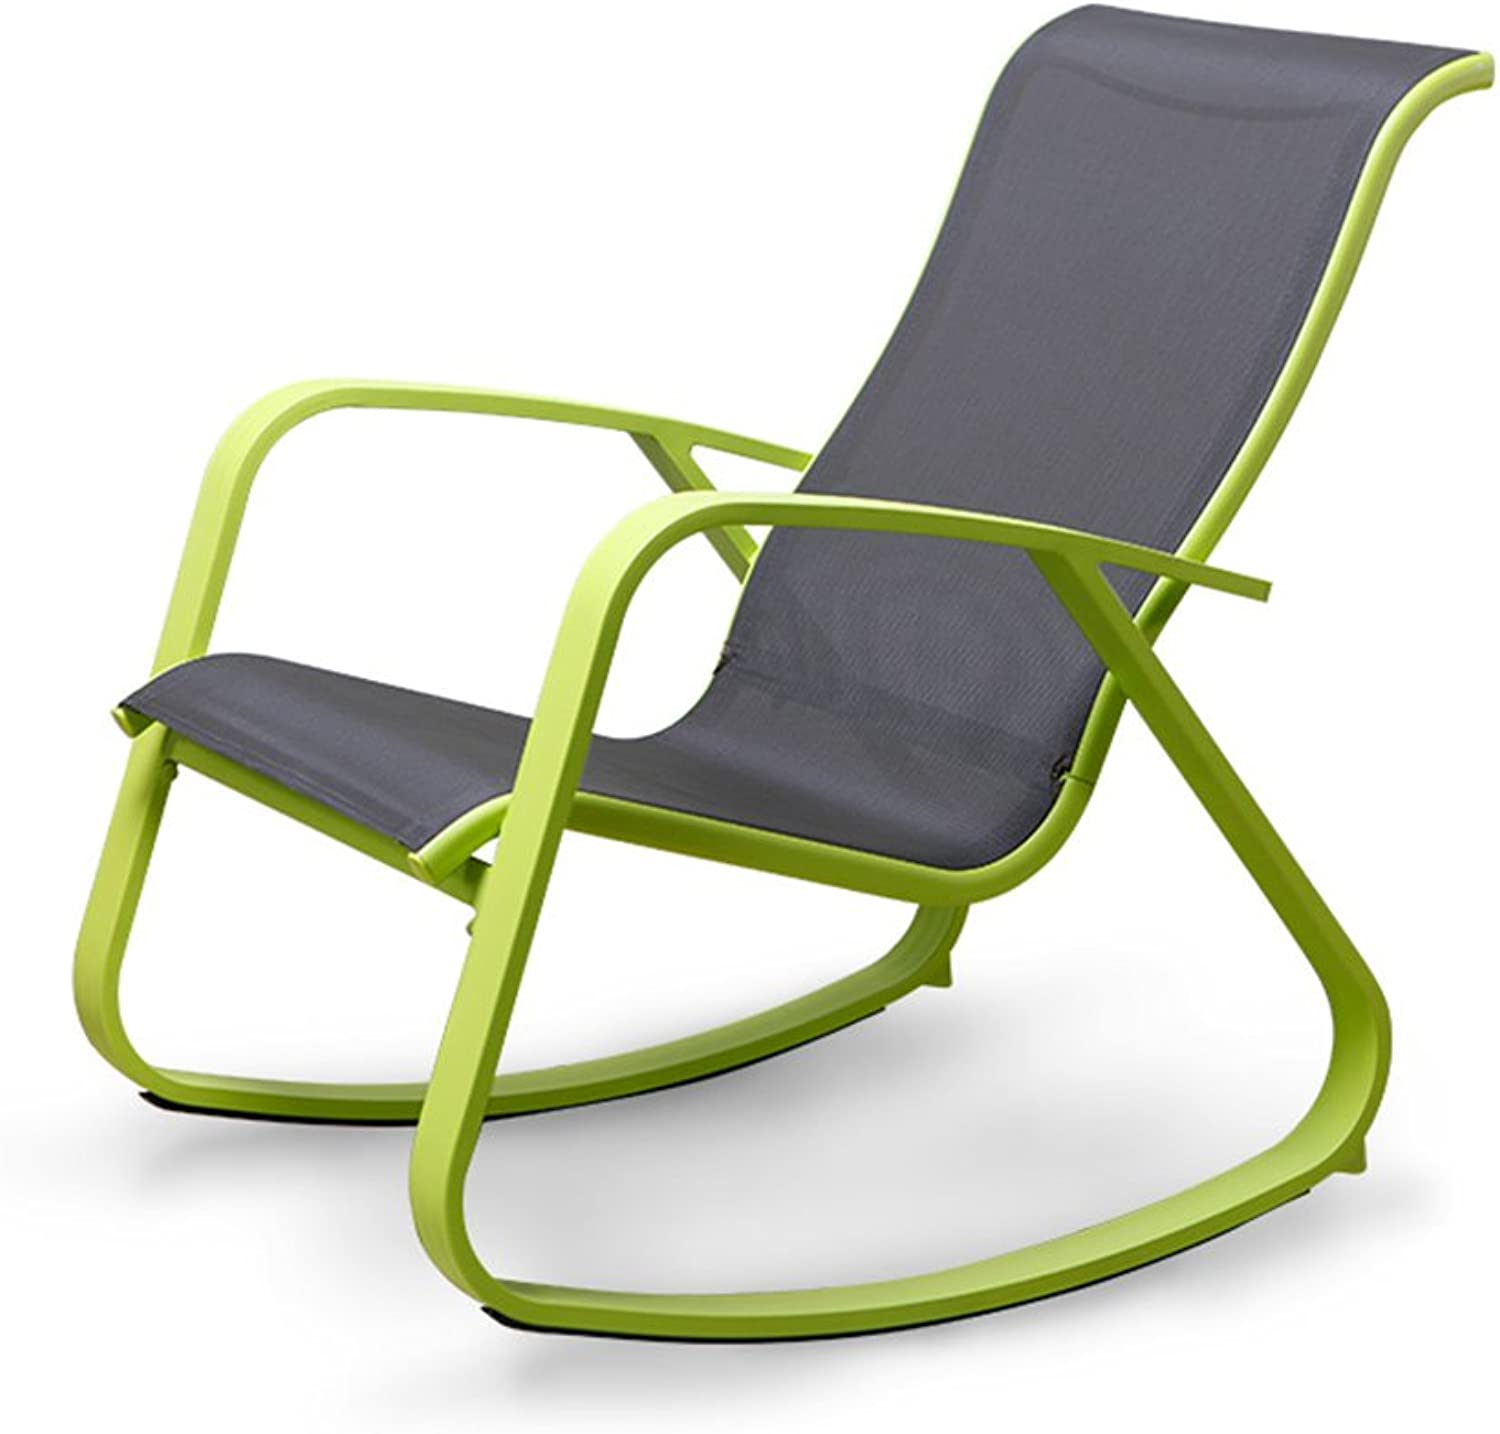 LVZAIXI Nordic Modern Rocking Chair Lounge Chair Environmental Predection Fabric + Steel Material Beach Chair Napping Chair Lazy Chair Garden Chair Balcony Lounge Chair Sun Lounger (color   Green)